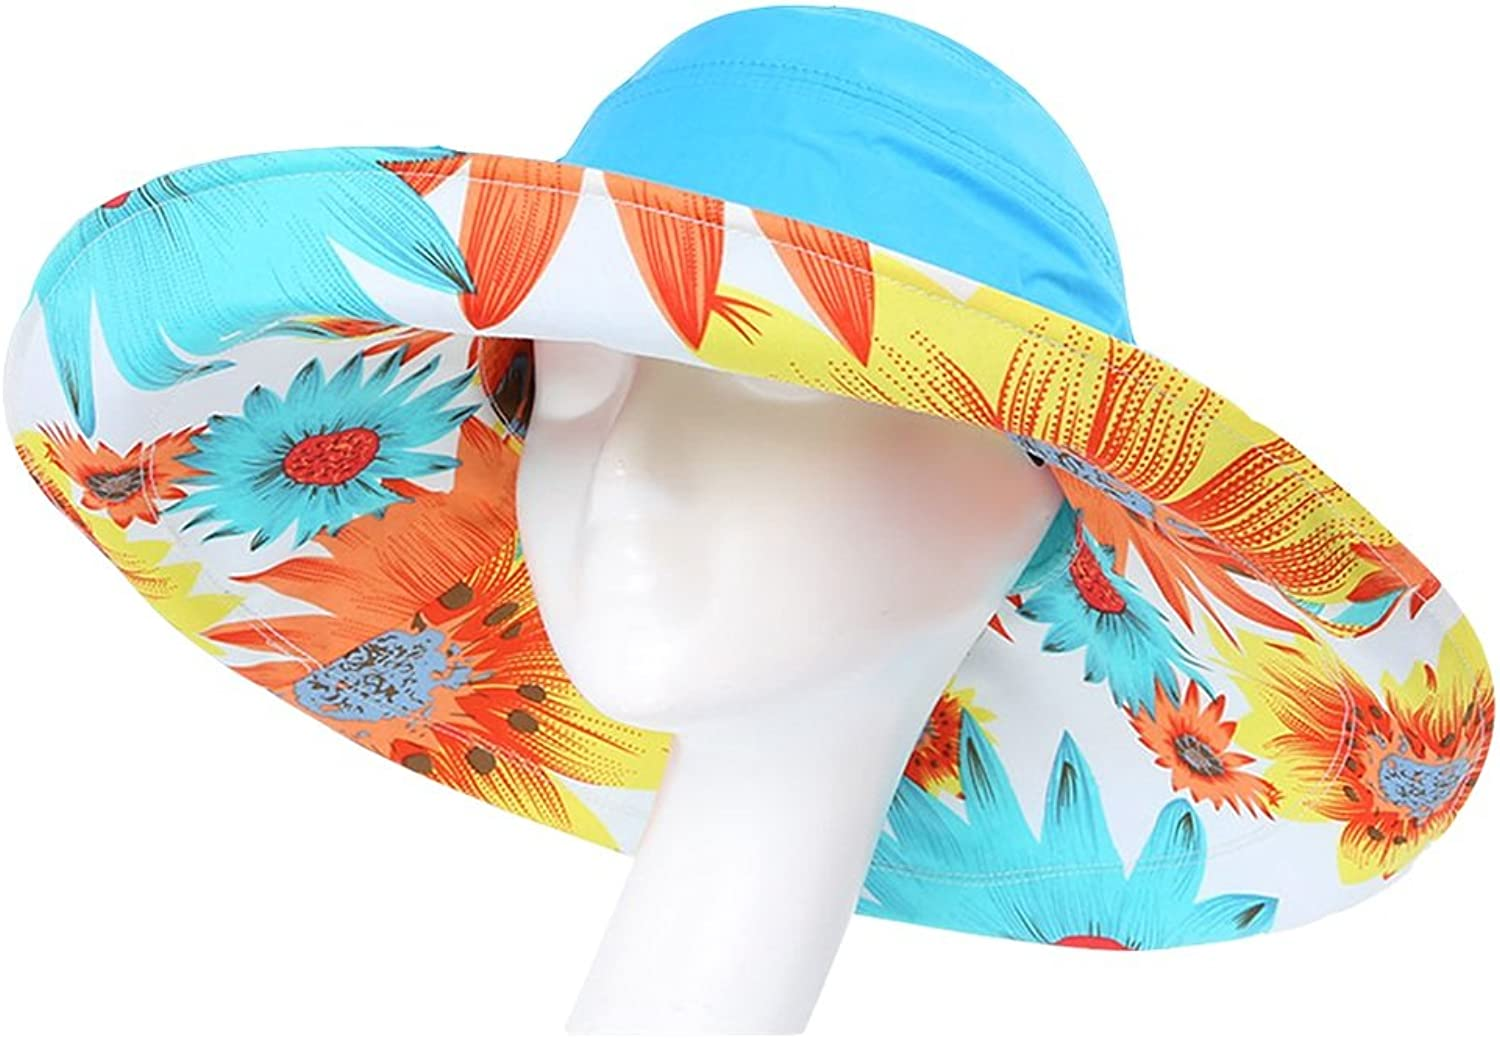 ZXQZ Hat Summer Sun Predection Collapsible Sun Hat Removable Outdoor Windproof Cool Cap Beach AntiUV Breathable Shade Hat UV Predection Cap (color   G)